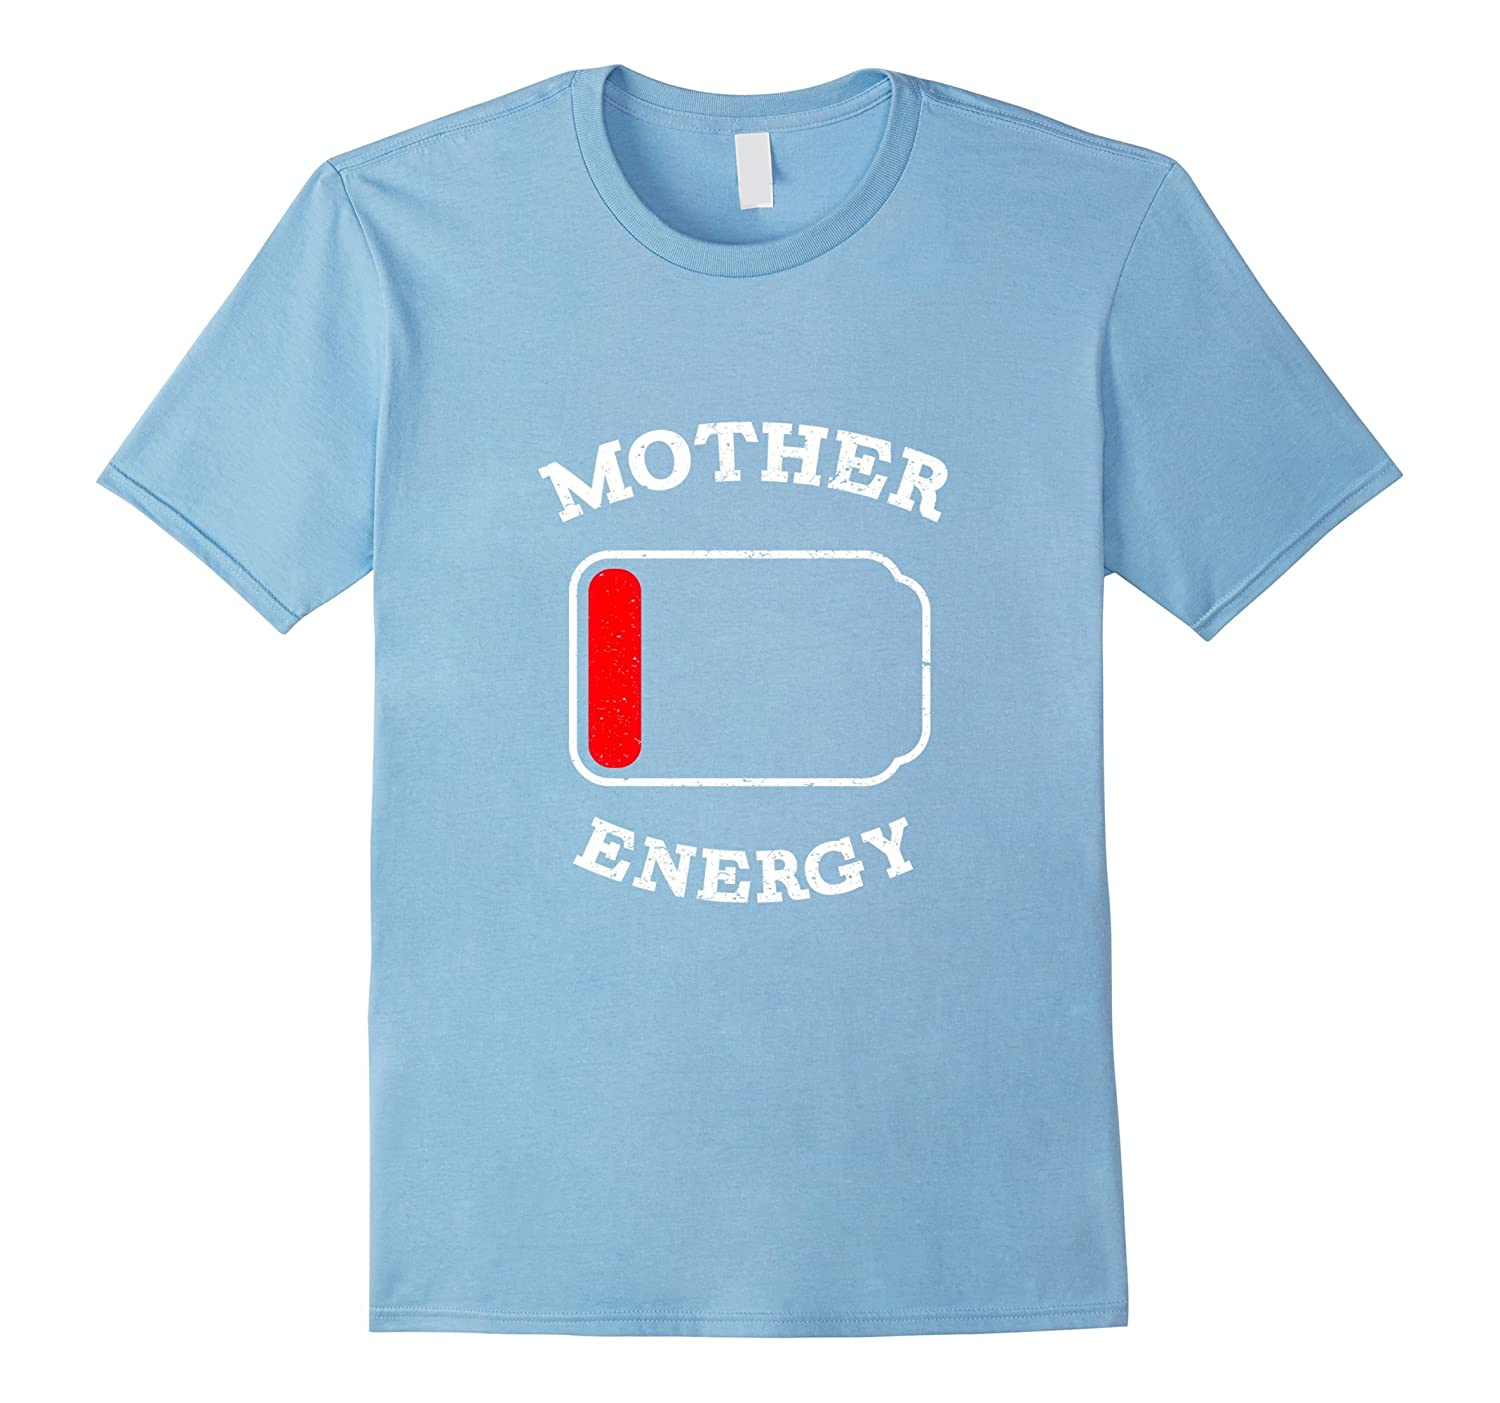 Battery Mother Energy T-Shirt Funny